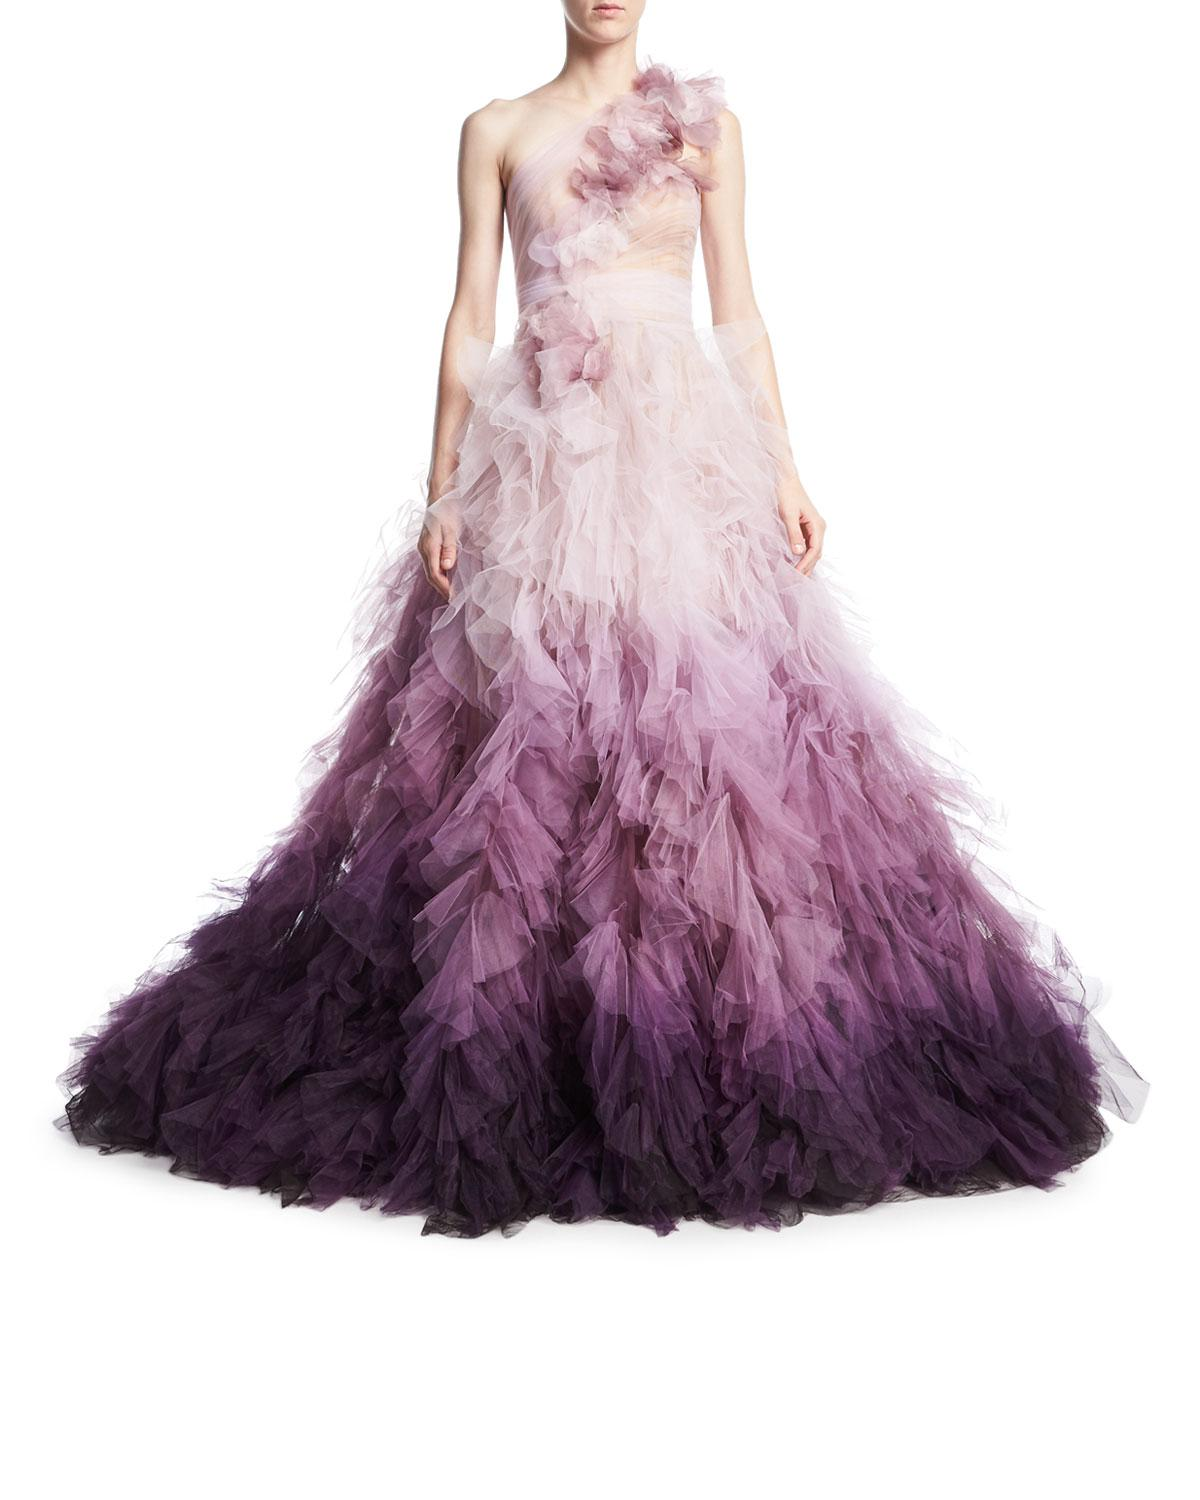 Lyst - Marchesa Ombre Tulle One-shoulder Ball Gown in Purple